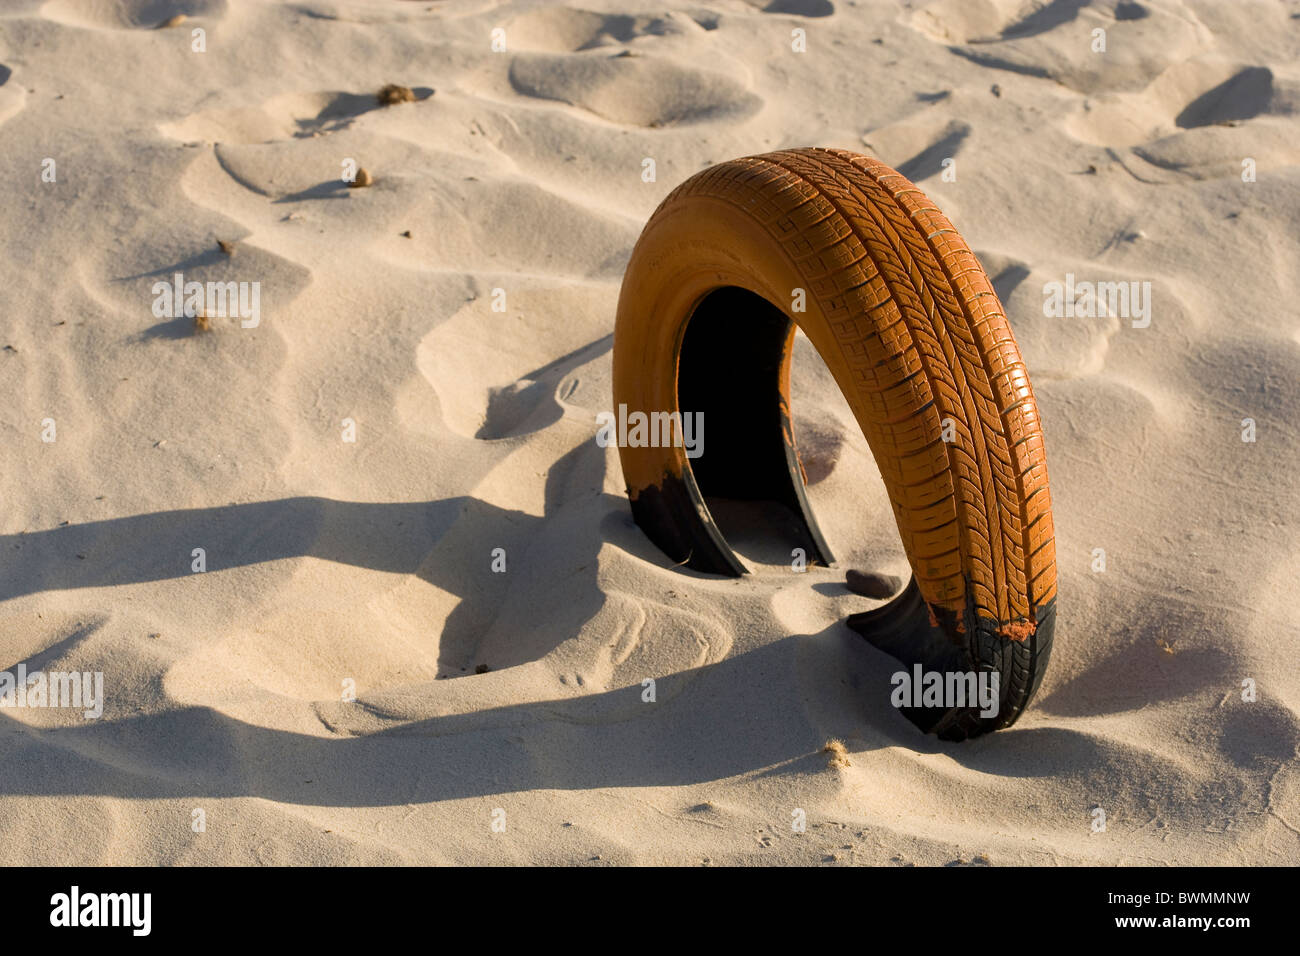 orange painted car tyre sunk into sand  - Stock Image